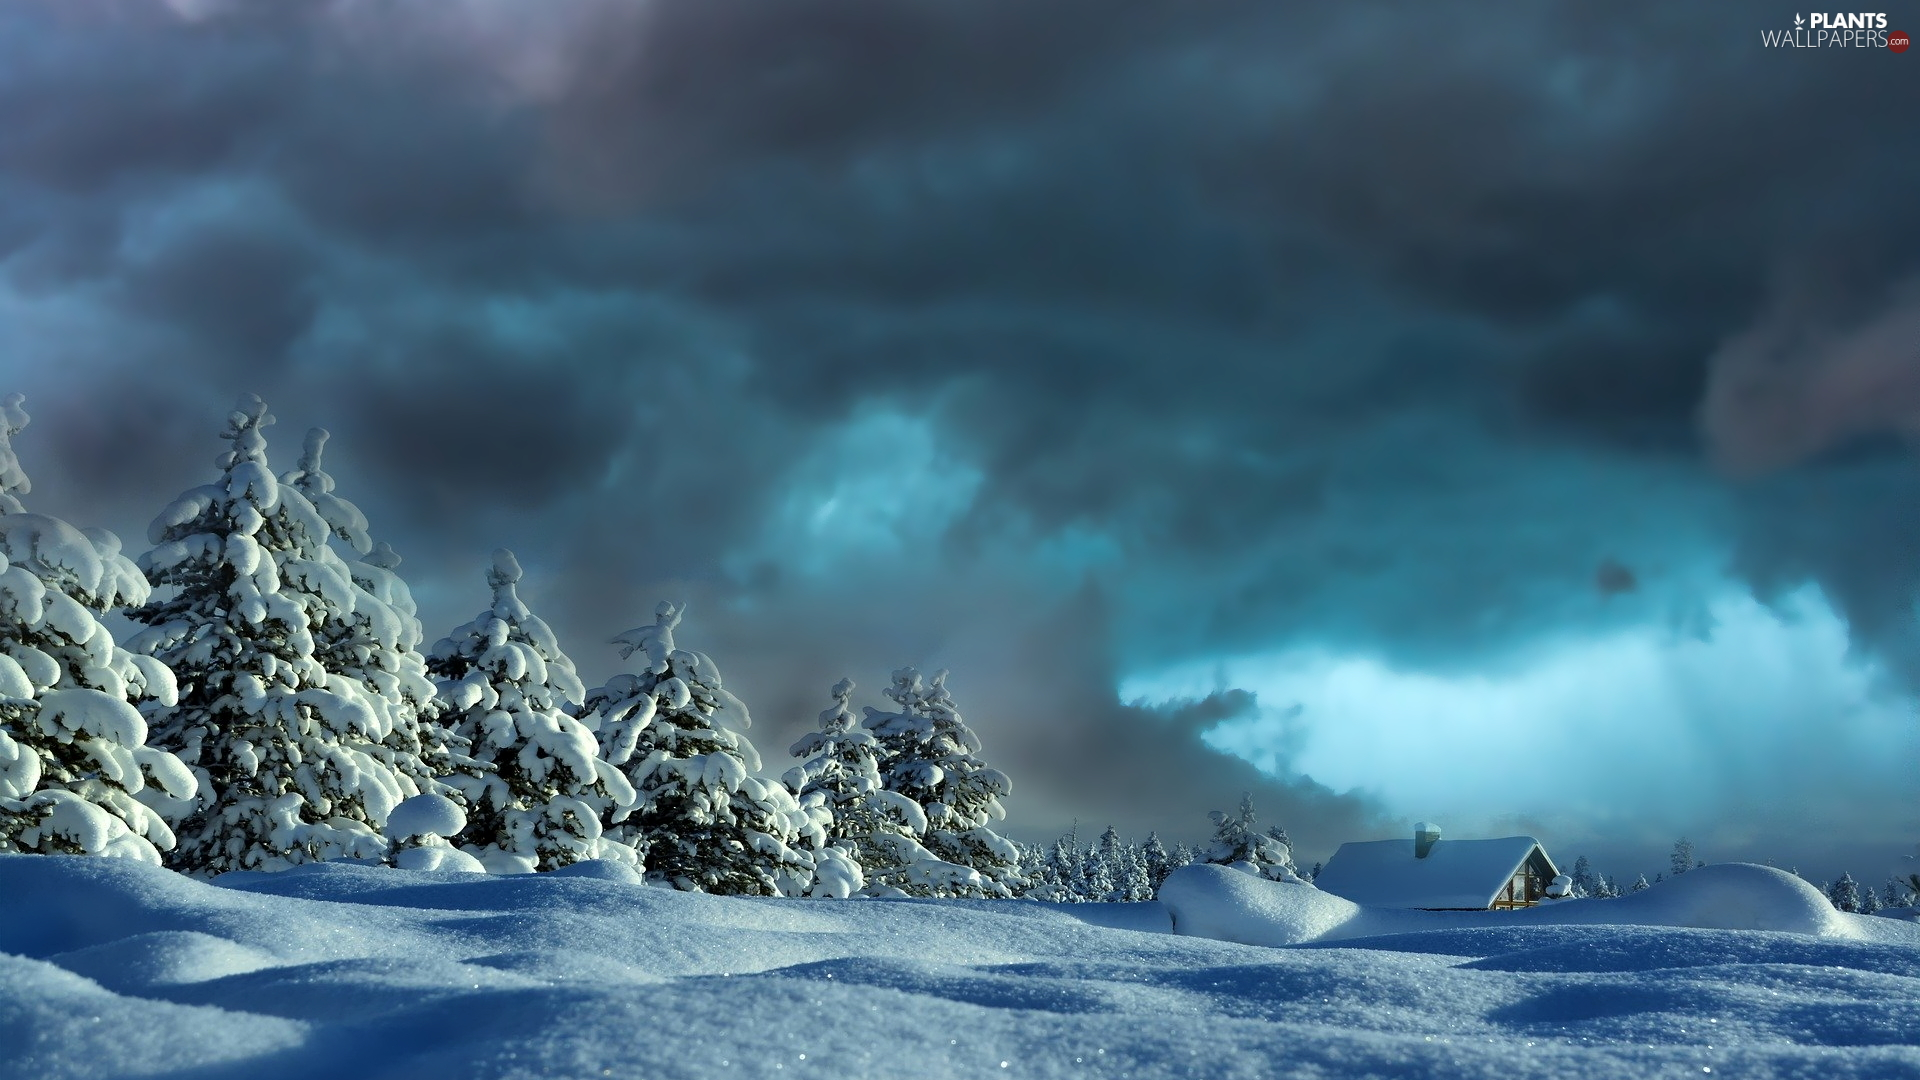 drifts, Spruces, clouds, house, dark, snow, winter, Sky